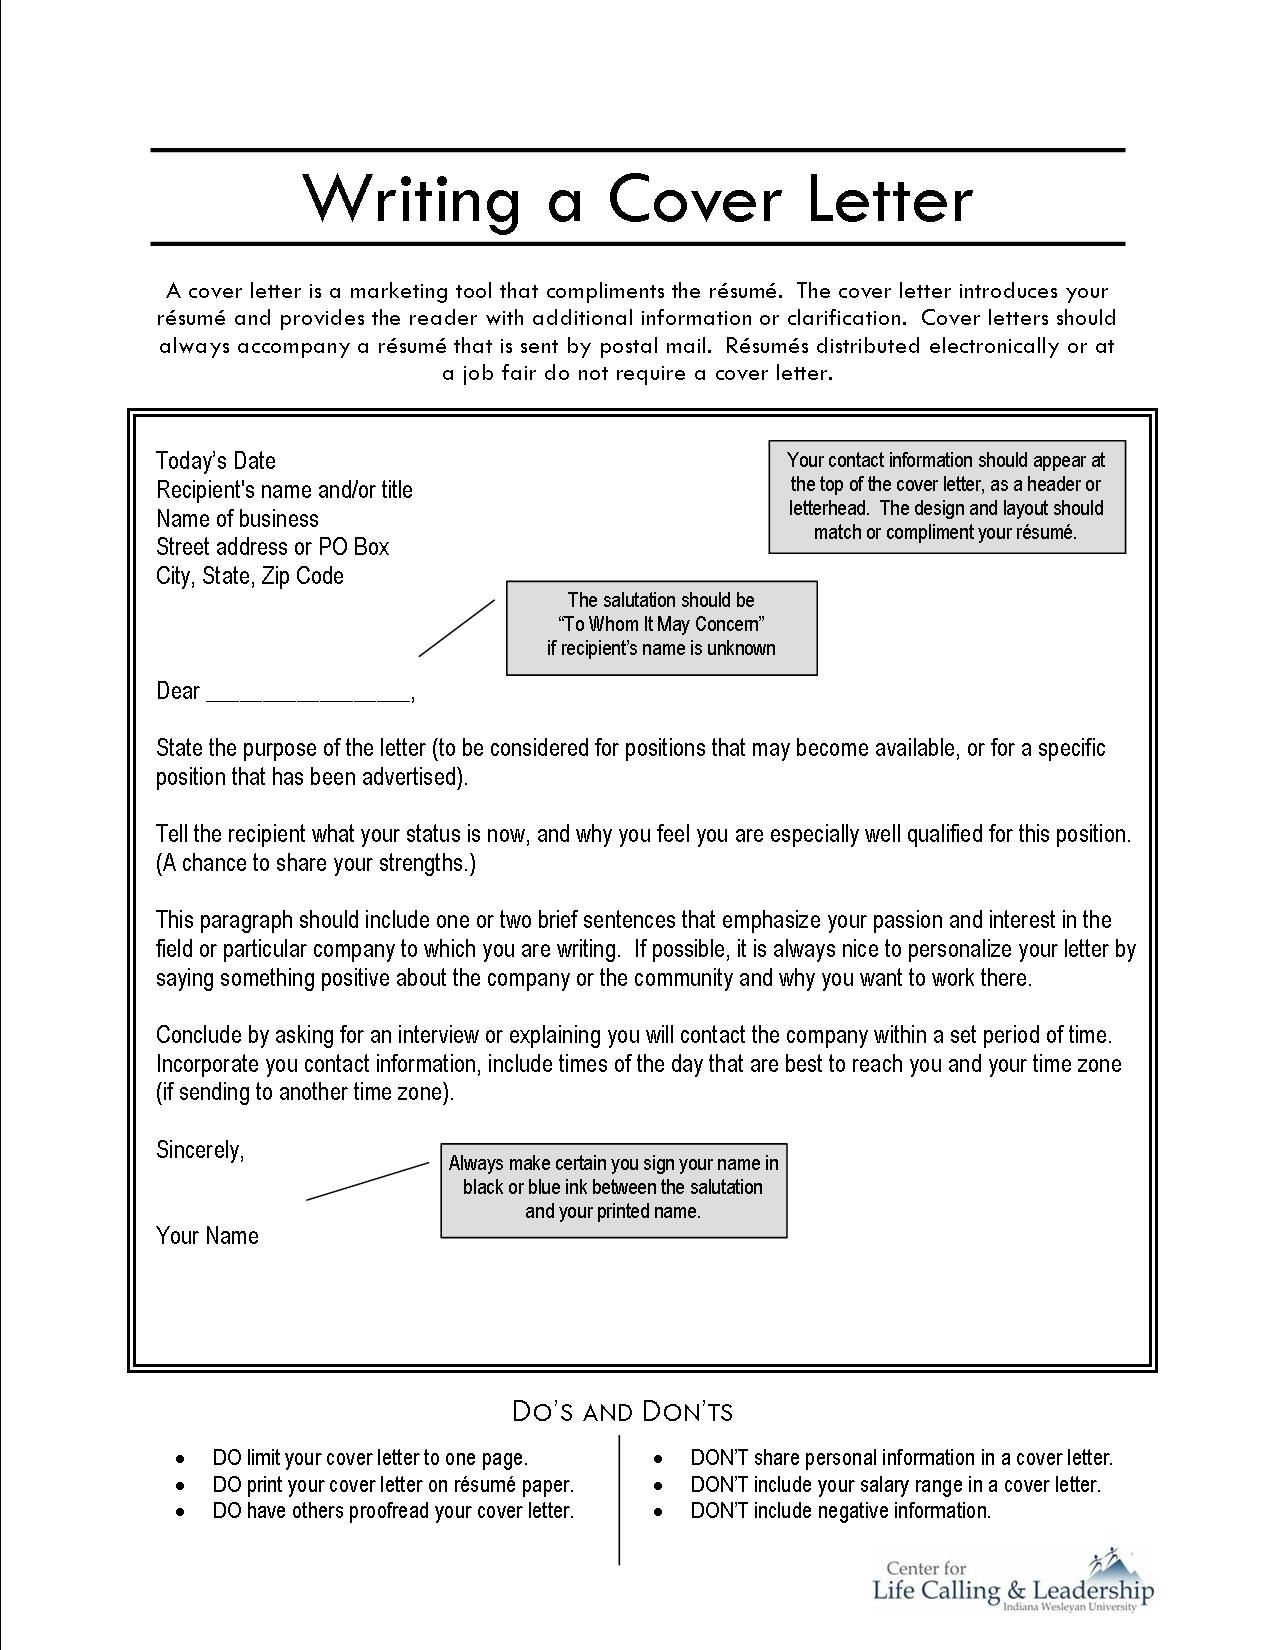 how start cover letter for resume jianbochen rfi sample - How To Make Cover Letter For Resume